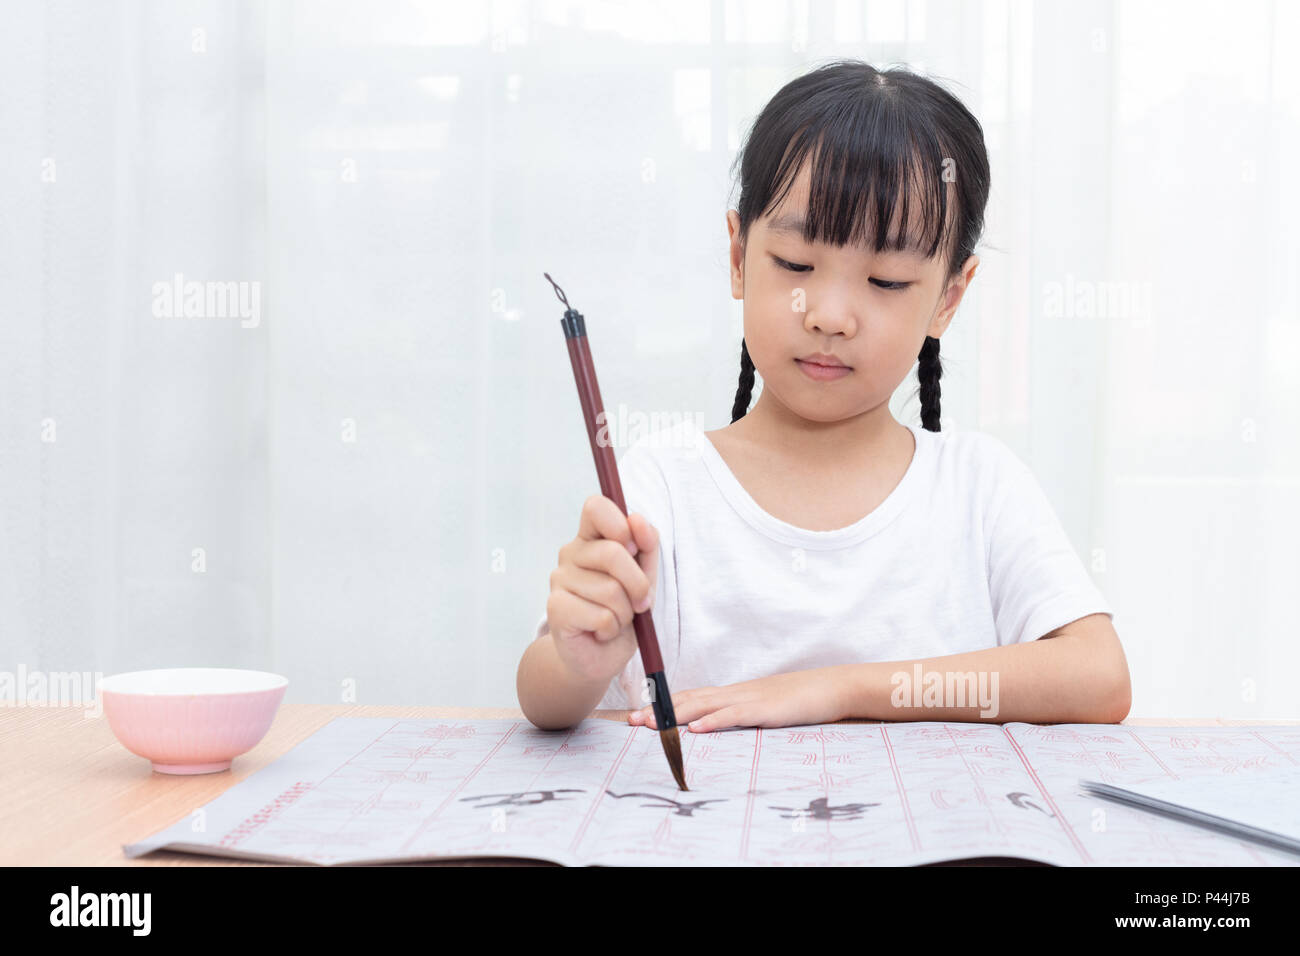 Handwriting Practice Stock Photos Amp Handwriting Practice